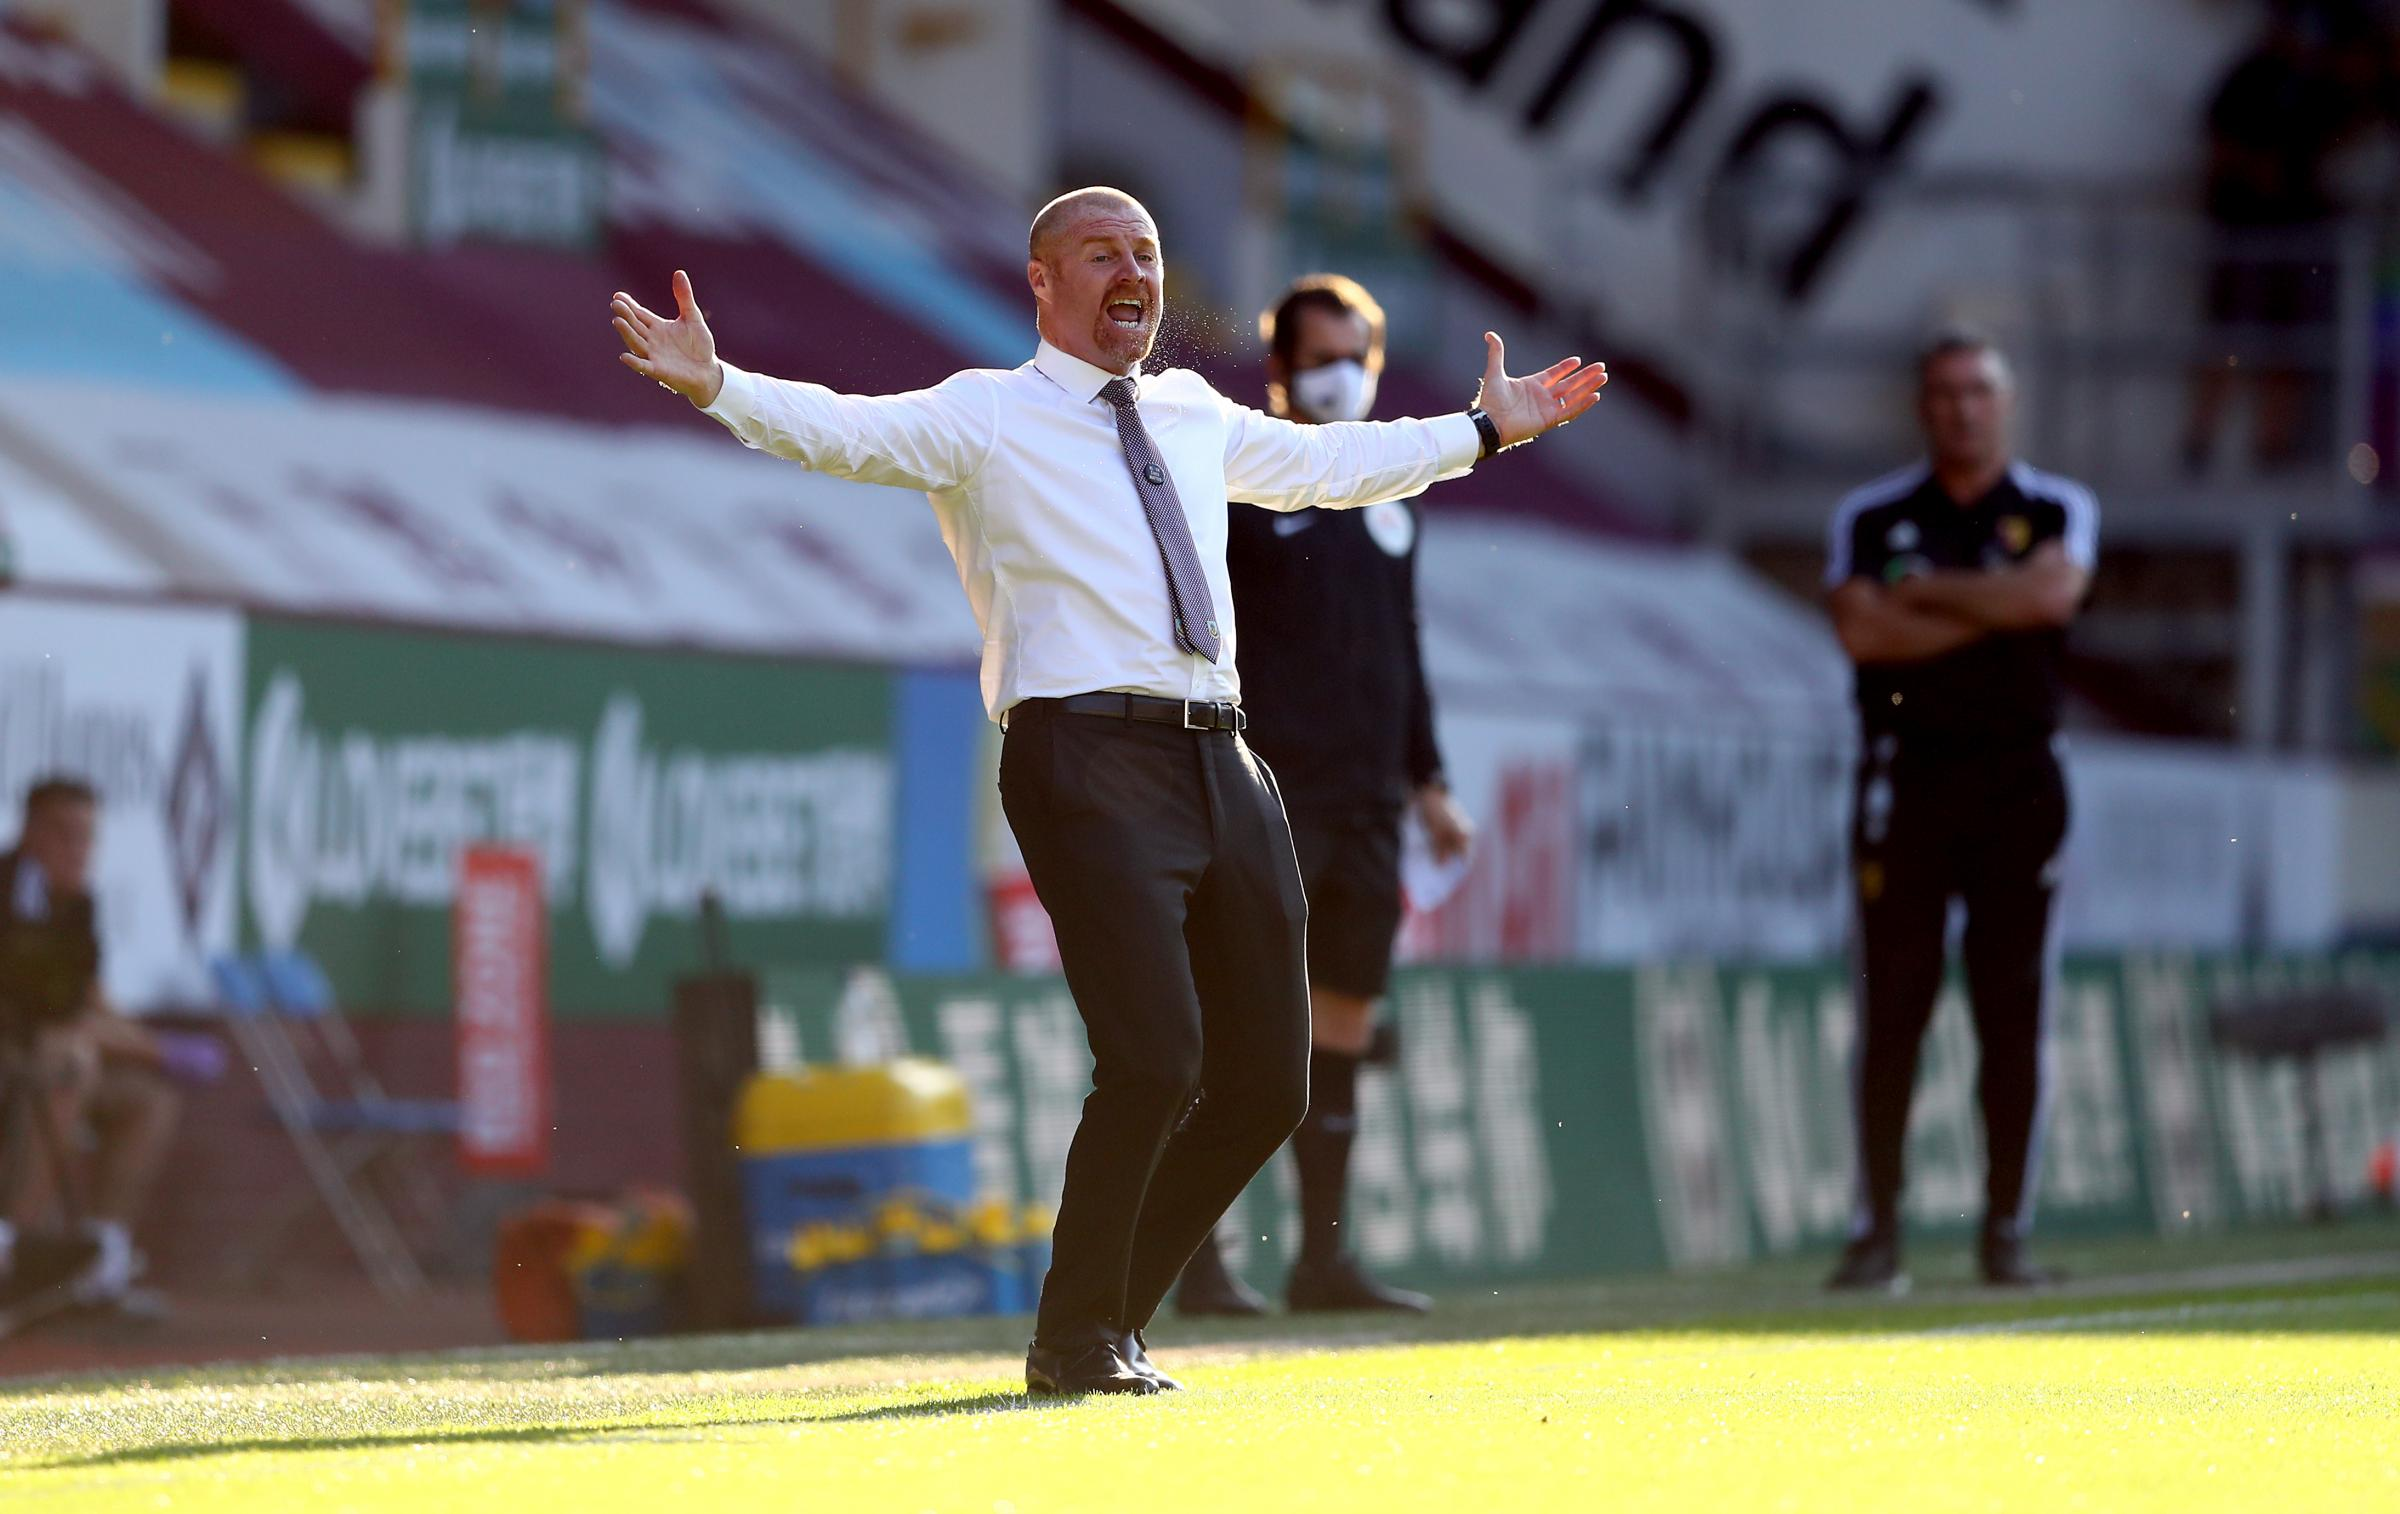 Sean Dyche responds to questions about his future after Burnley's win over Watford